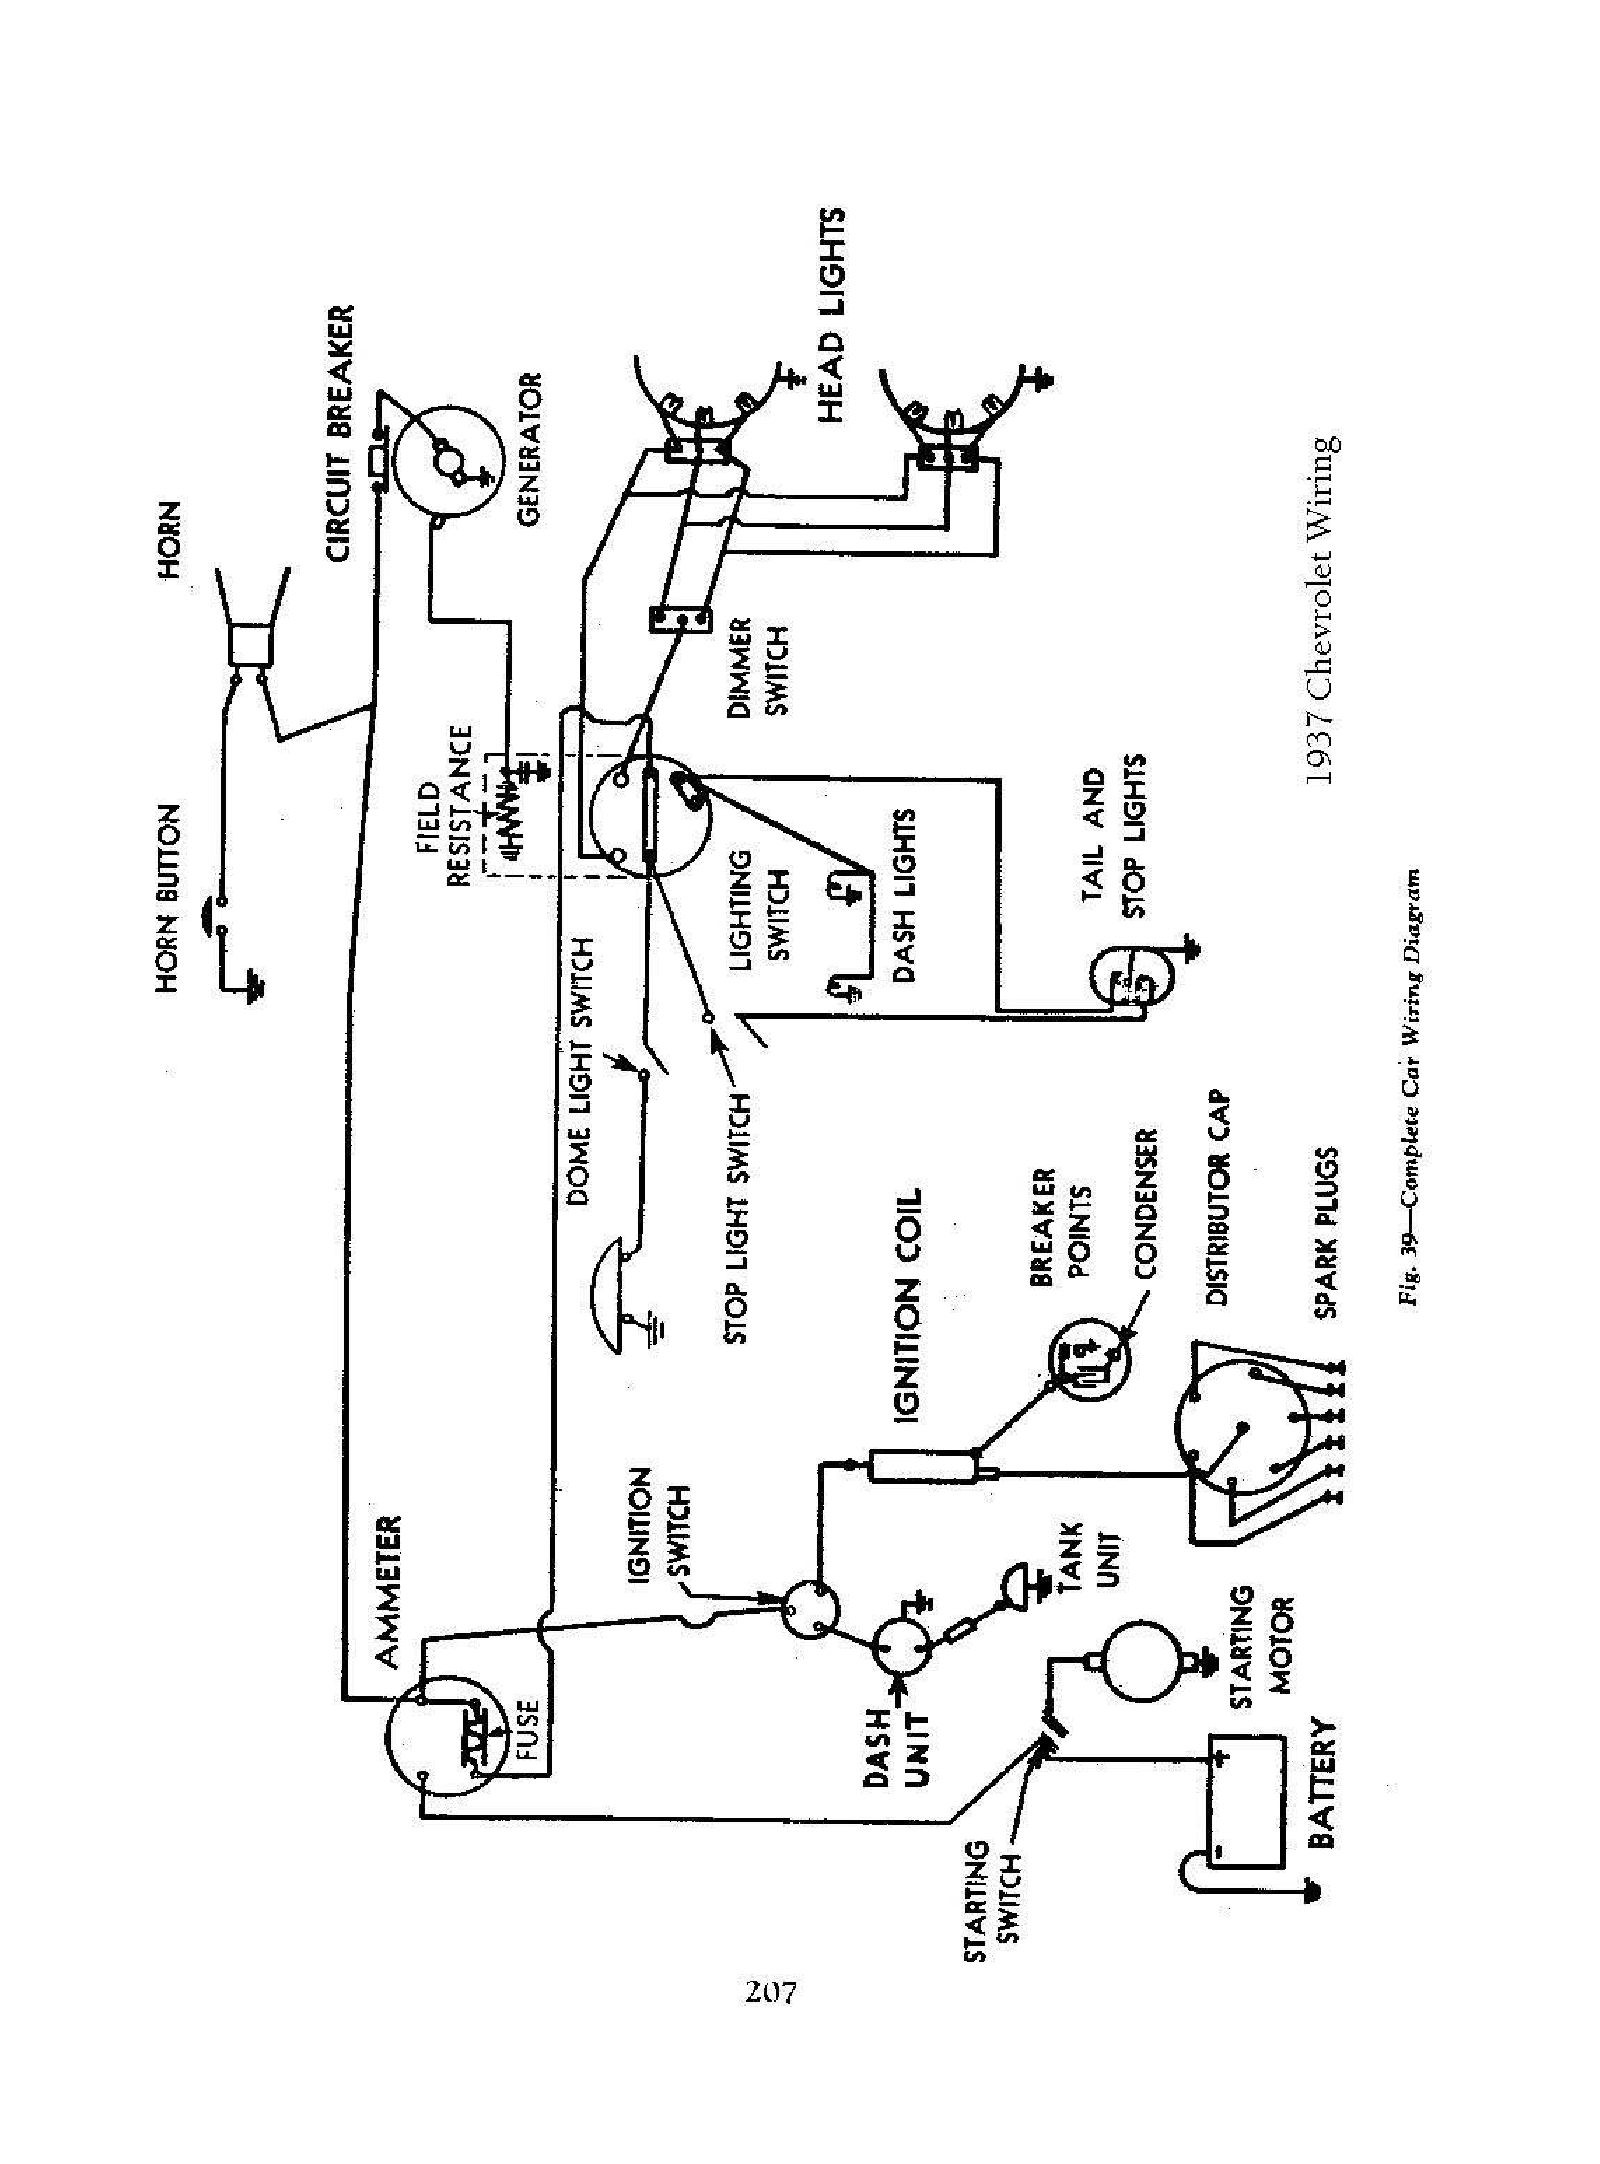 interior light wiring diagram page 4 wiring diagram and schematics rh rivcas org